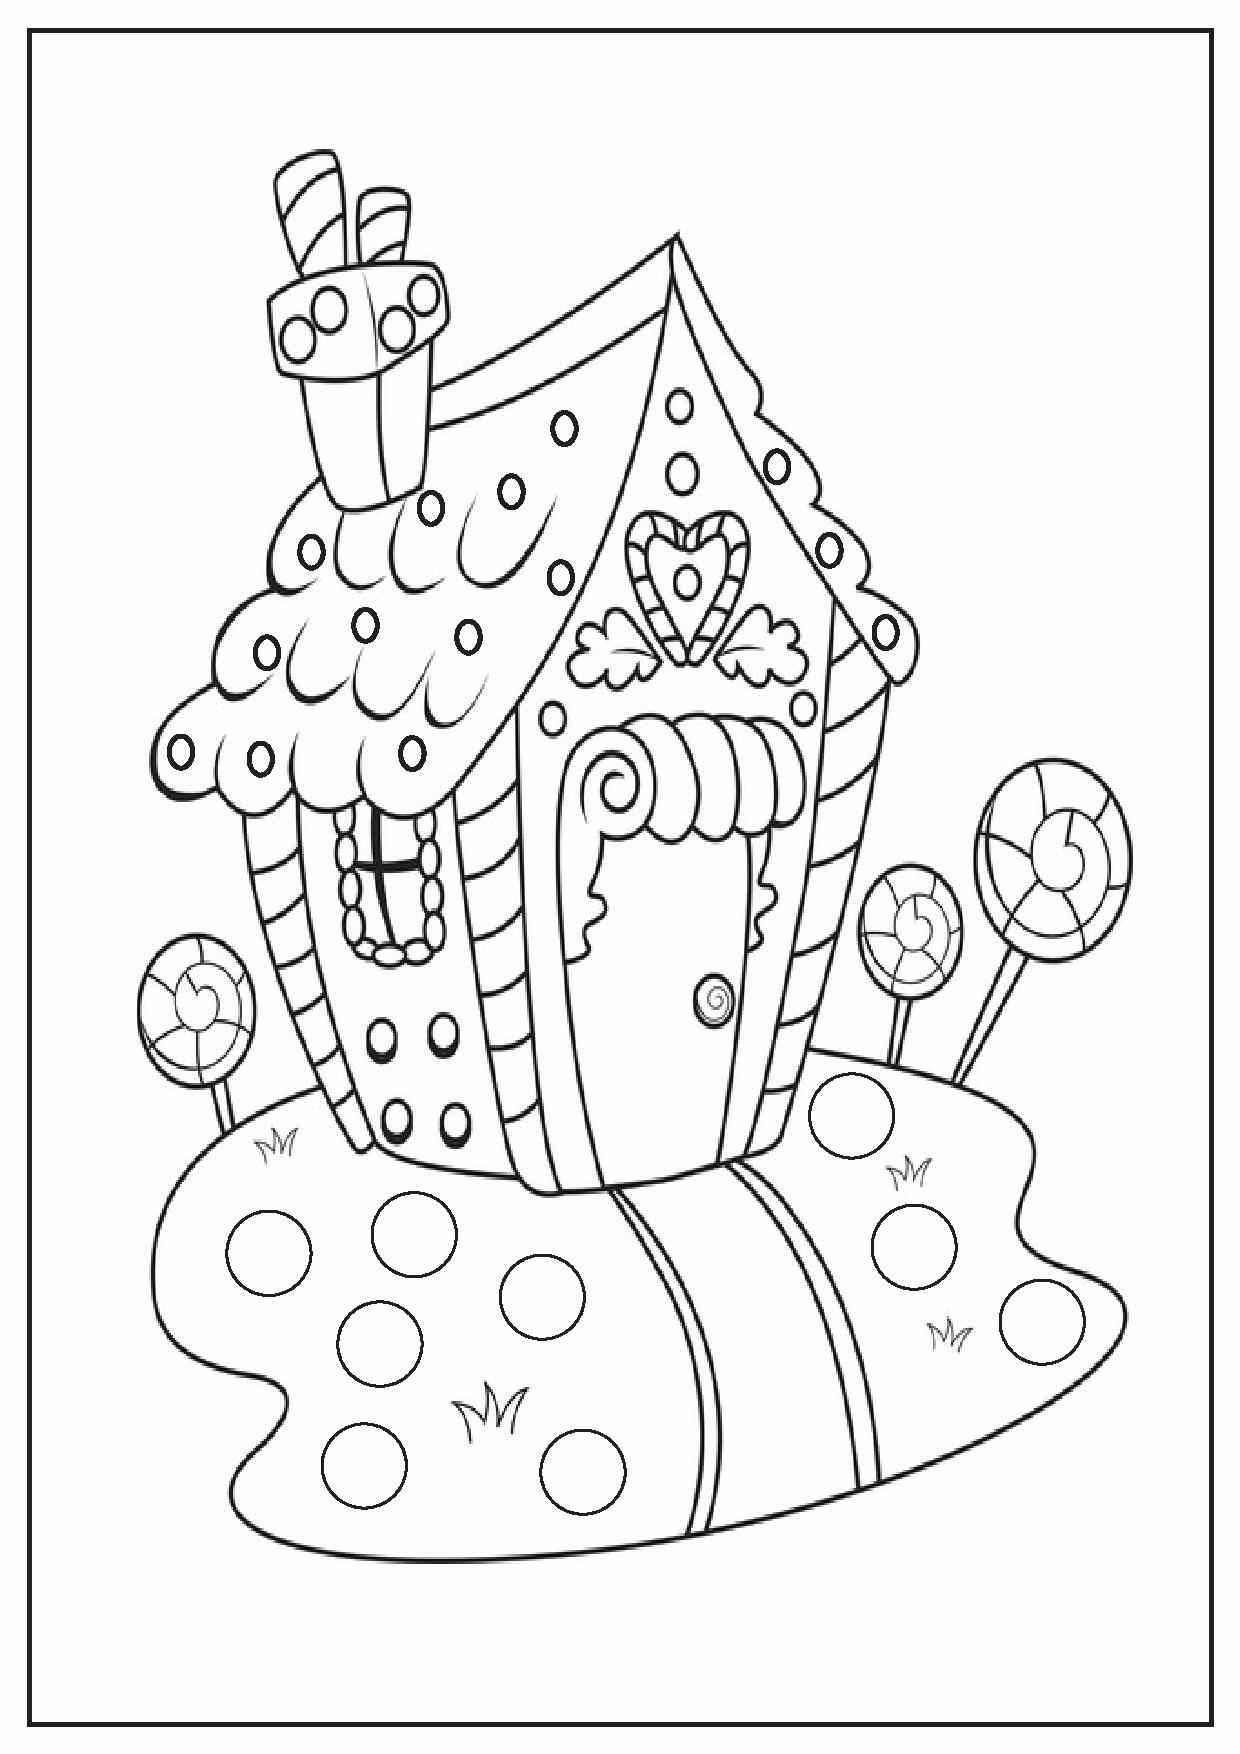 Kindergarten Coloring Sheets | Only Coloring Pages | Coloring - Free Christmas Coloring Printables